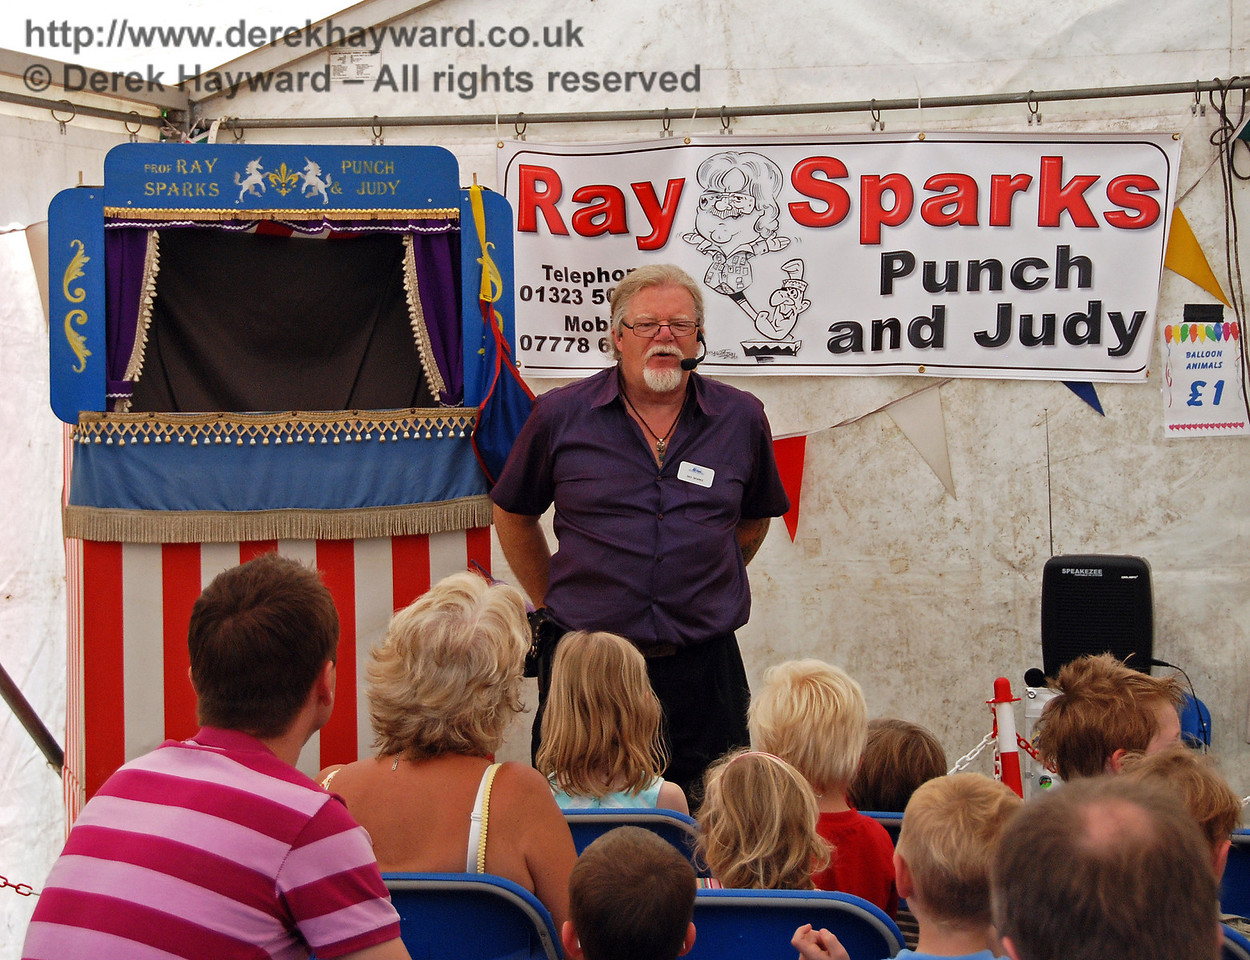 Ray Sparks prepares to start the Punch and Judy show. Horsted Keynes 27.06.2009